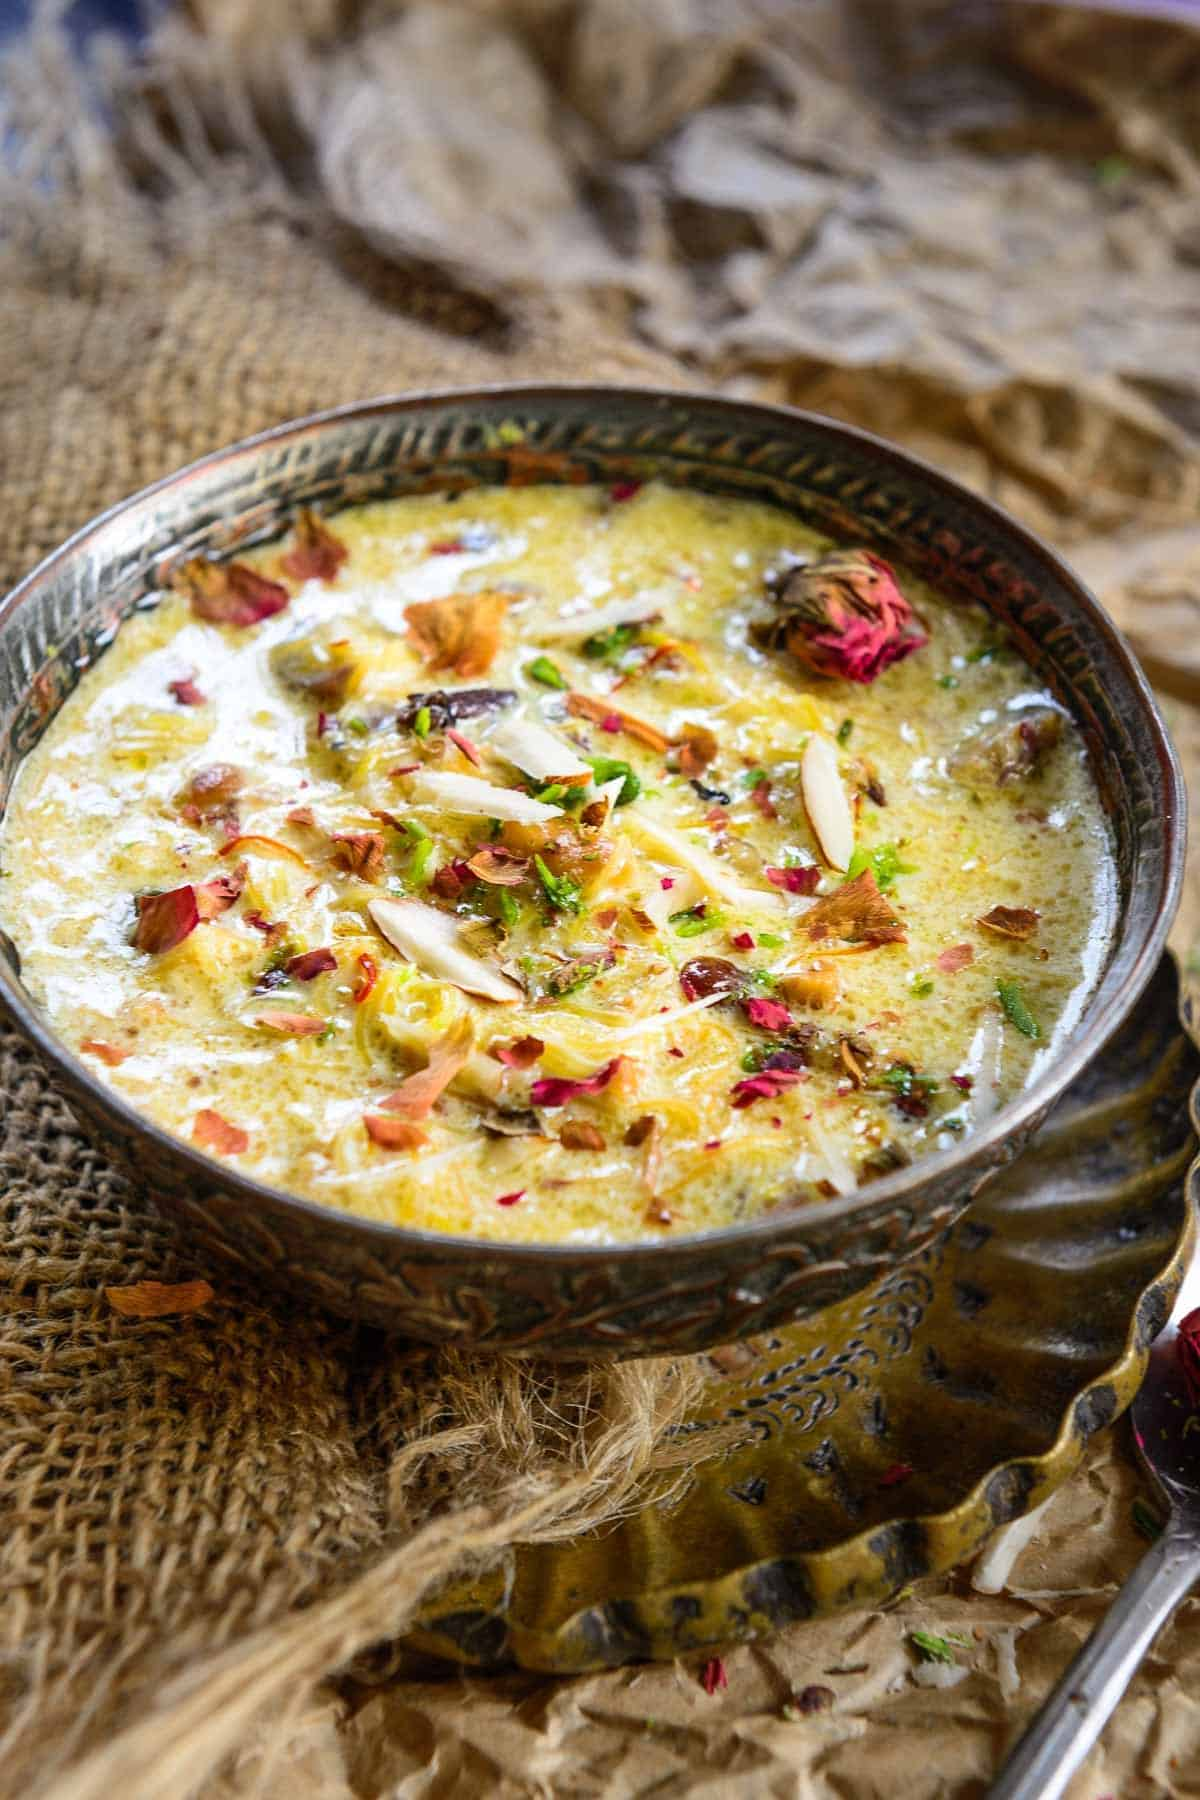 Sheer khurma served in a bowl.